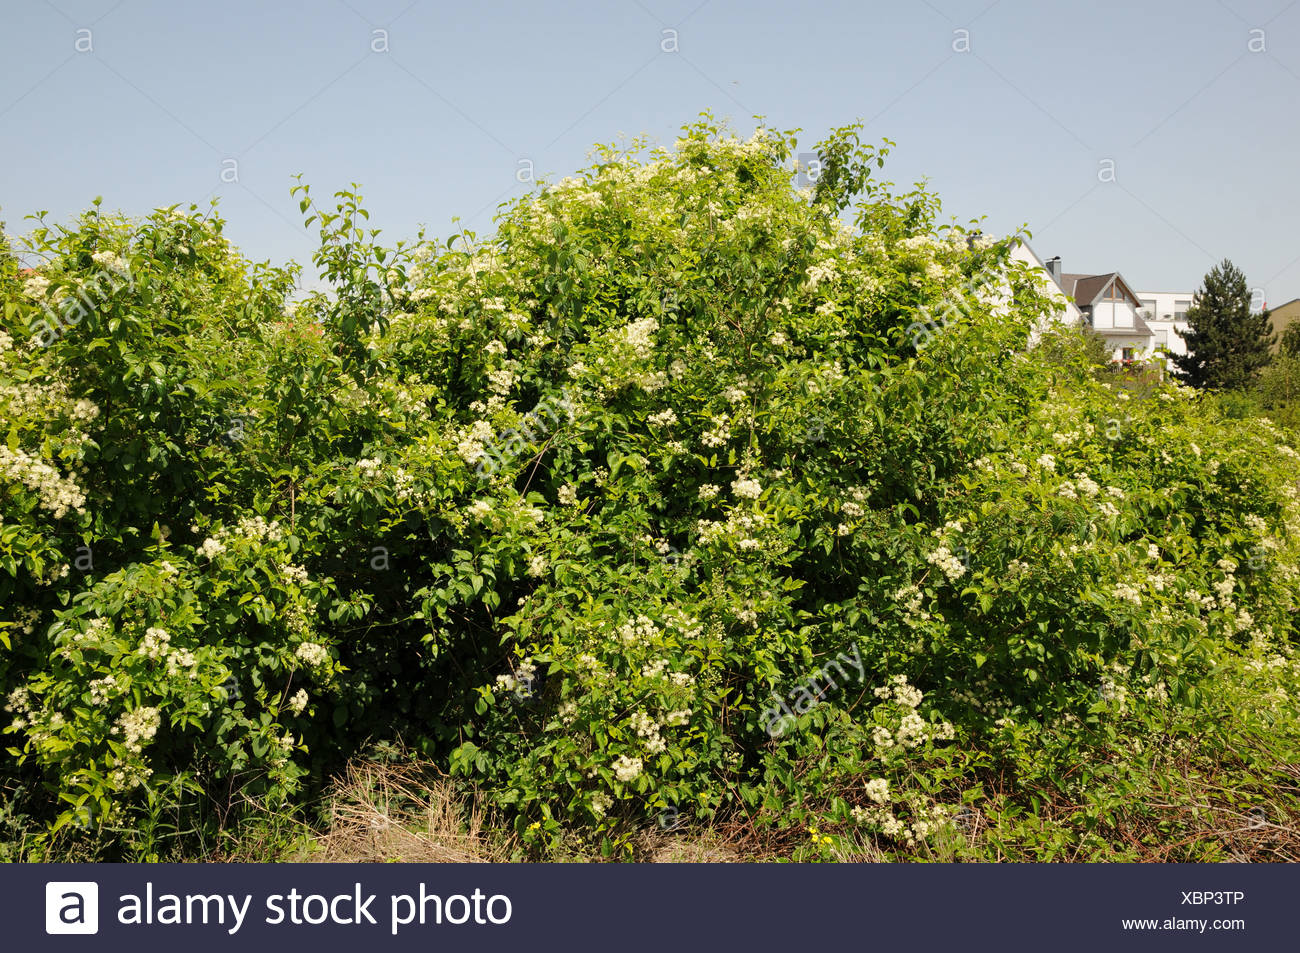 Clematis vitalba Stock Photo